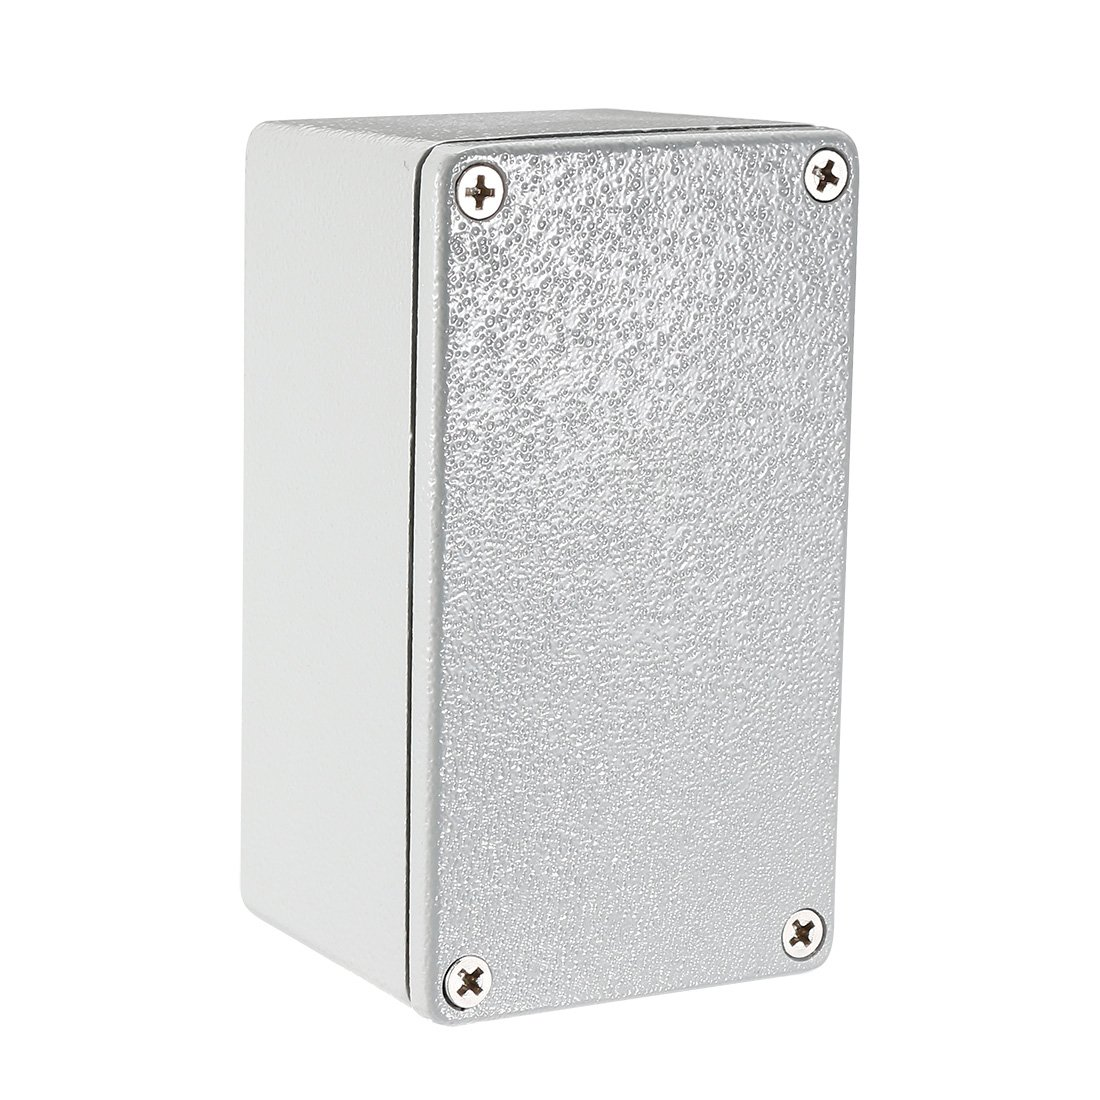 uxcell 4.5''x2.6''x2.2''(115mmx65mmx55mm) Metal Project Enclosure Electrical Aluminum Junction Boxes Waterproof IP65 w Two Horns/Six screws, Abrasion Resistant, Good Heat Dissipation for Outdoor